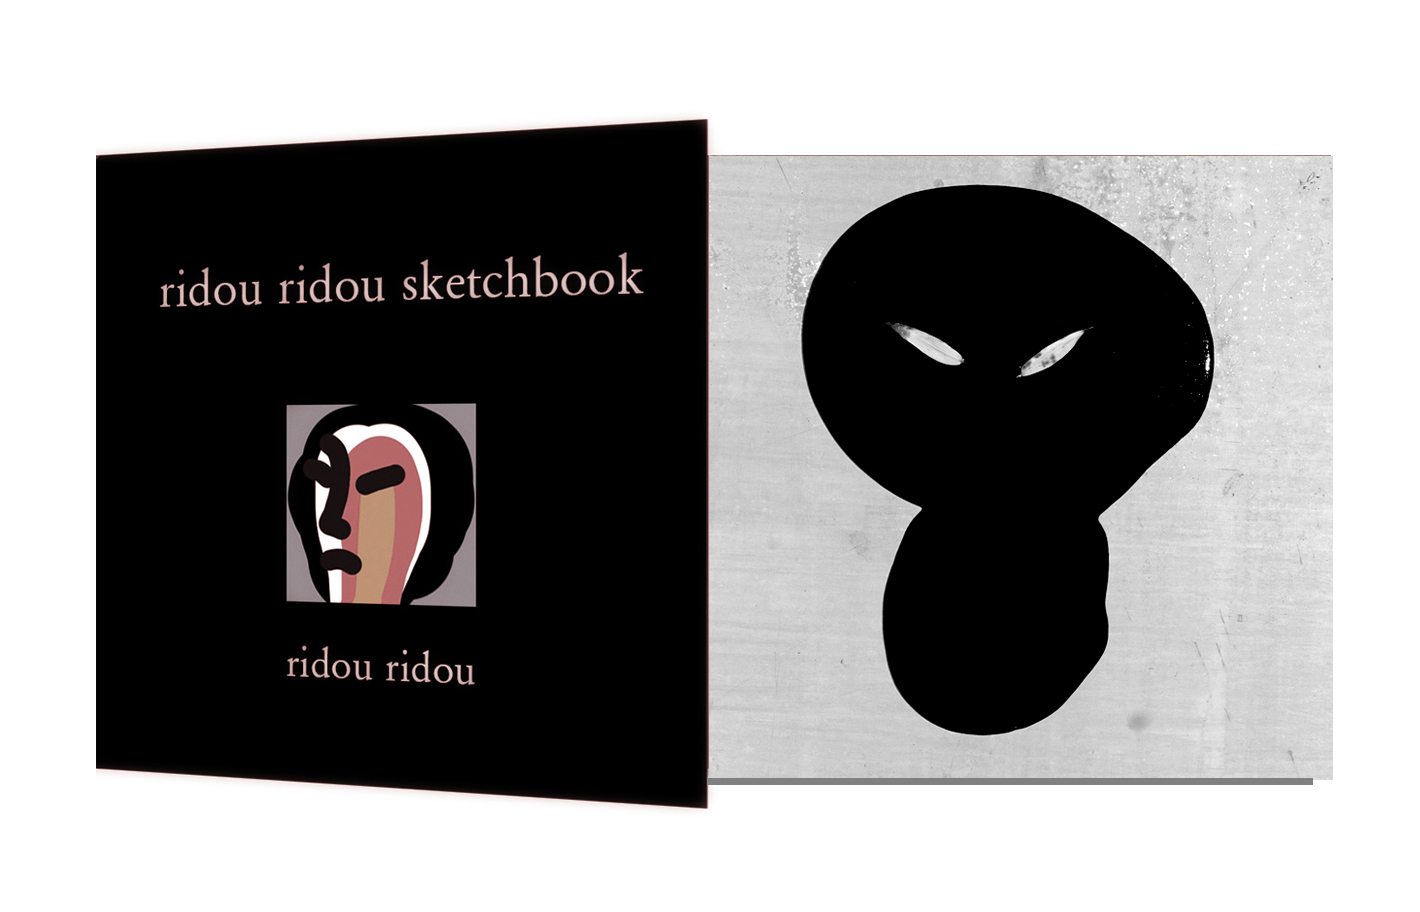 Ridou Ridou Sketchbook